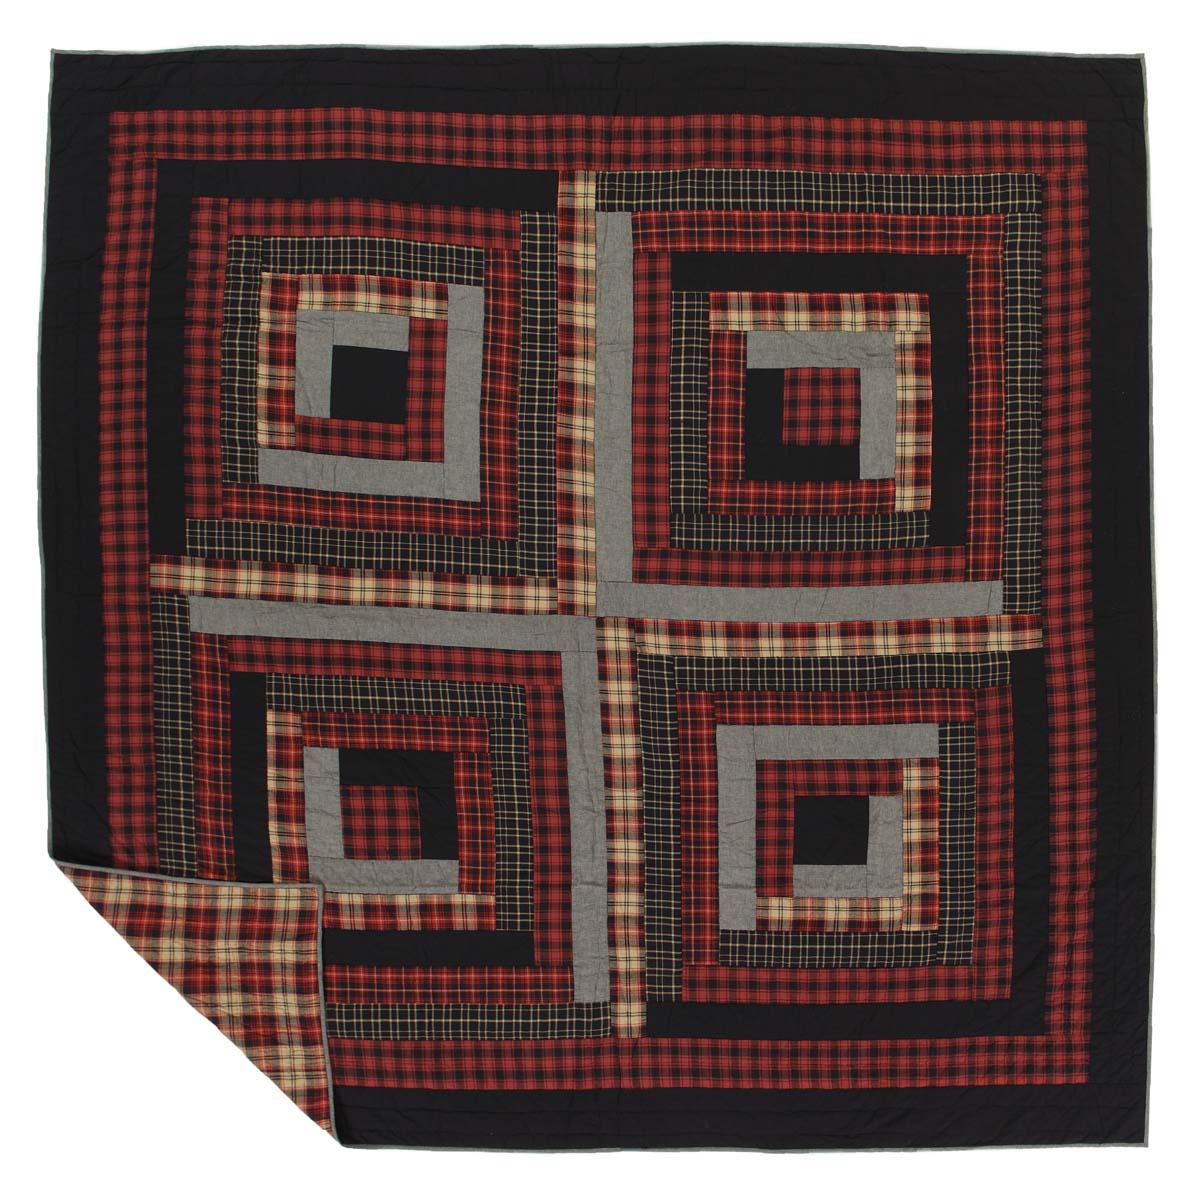 CUMBERLAND QUILT & accessories-Log Cabin Red Brands